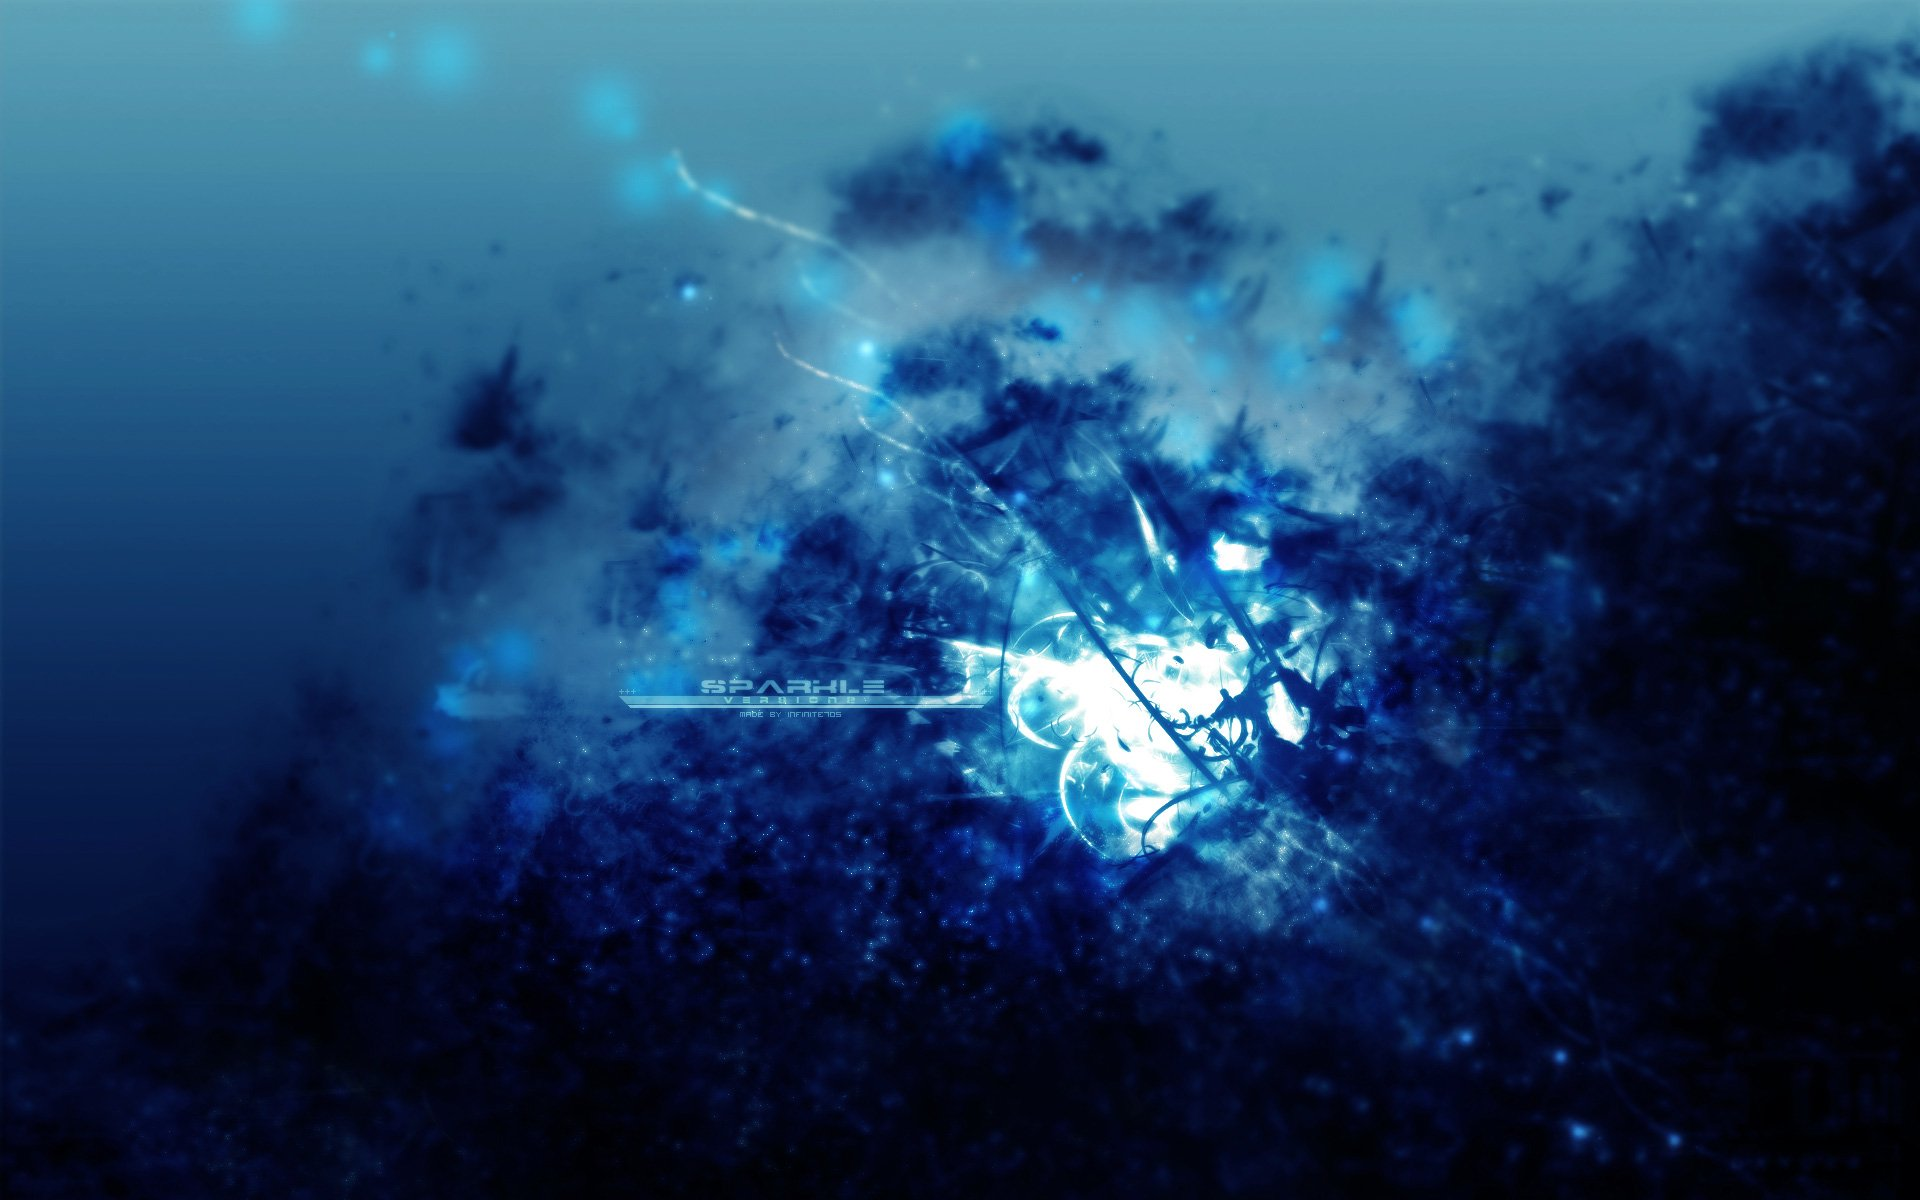 Abstract - Blue  Colors Shapes Pattern Texture Technology Abstract Artistic 3D CGI Digital Art Glow Wallpaper